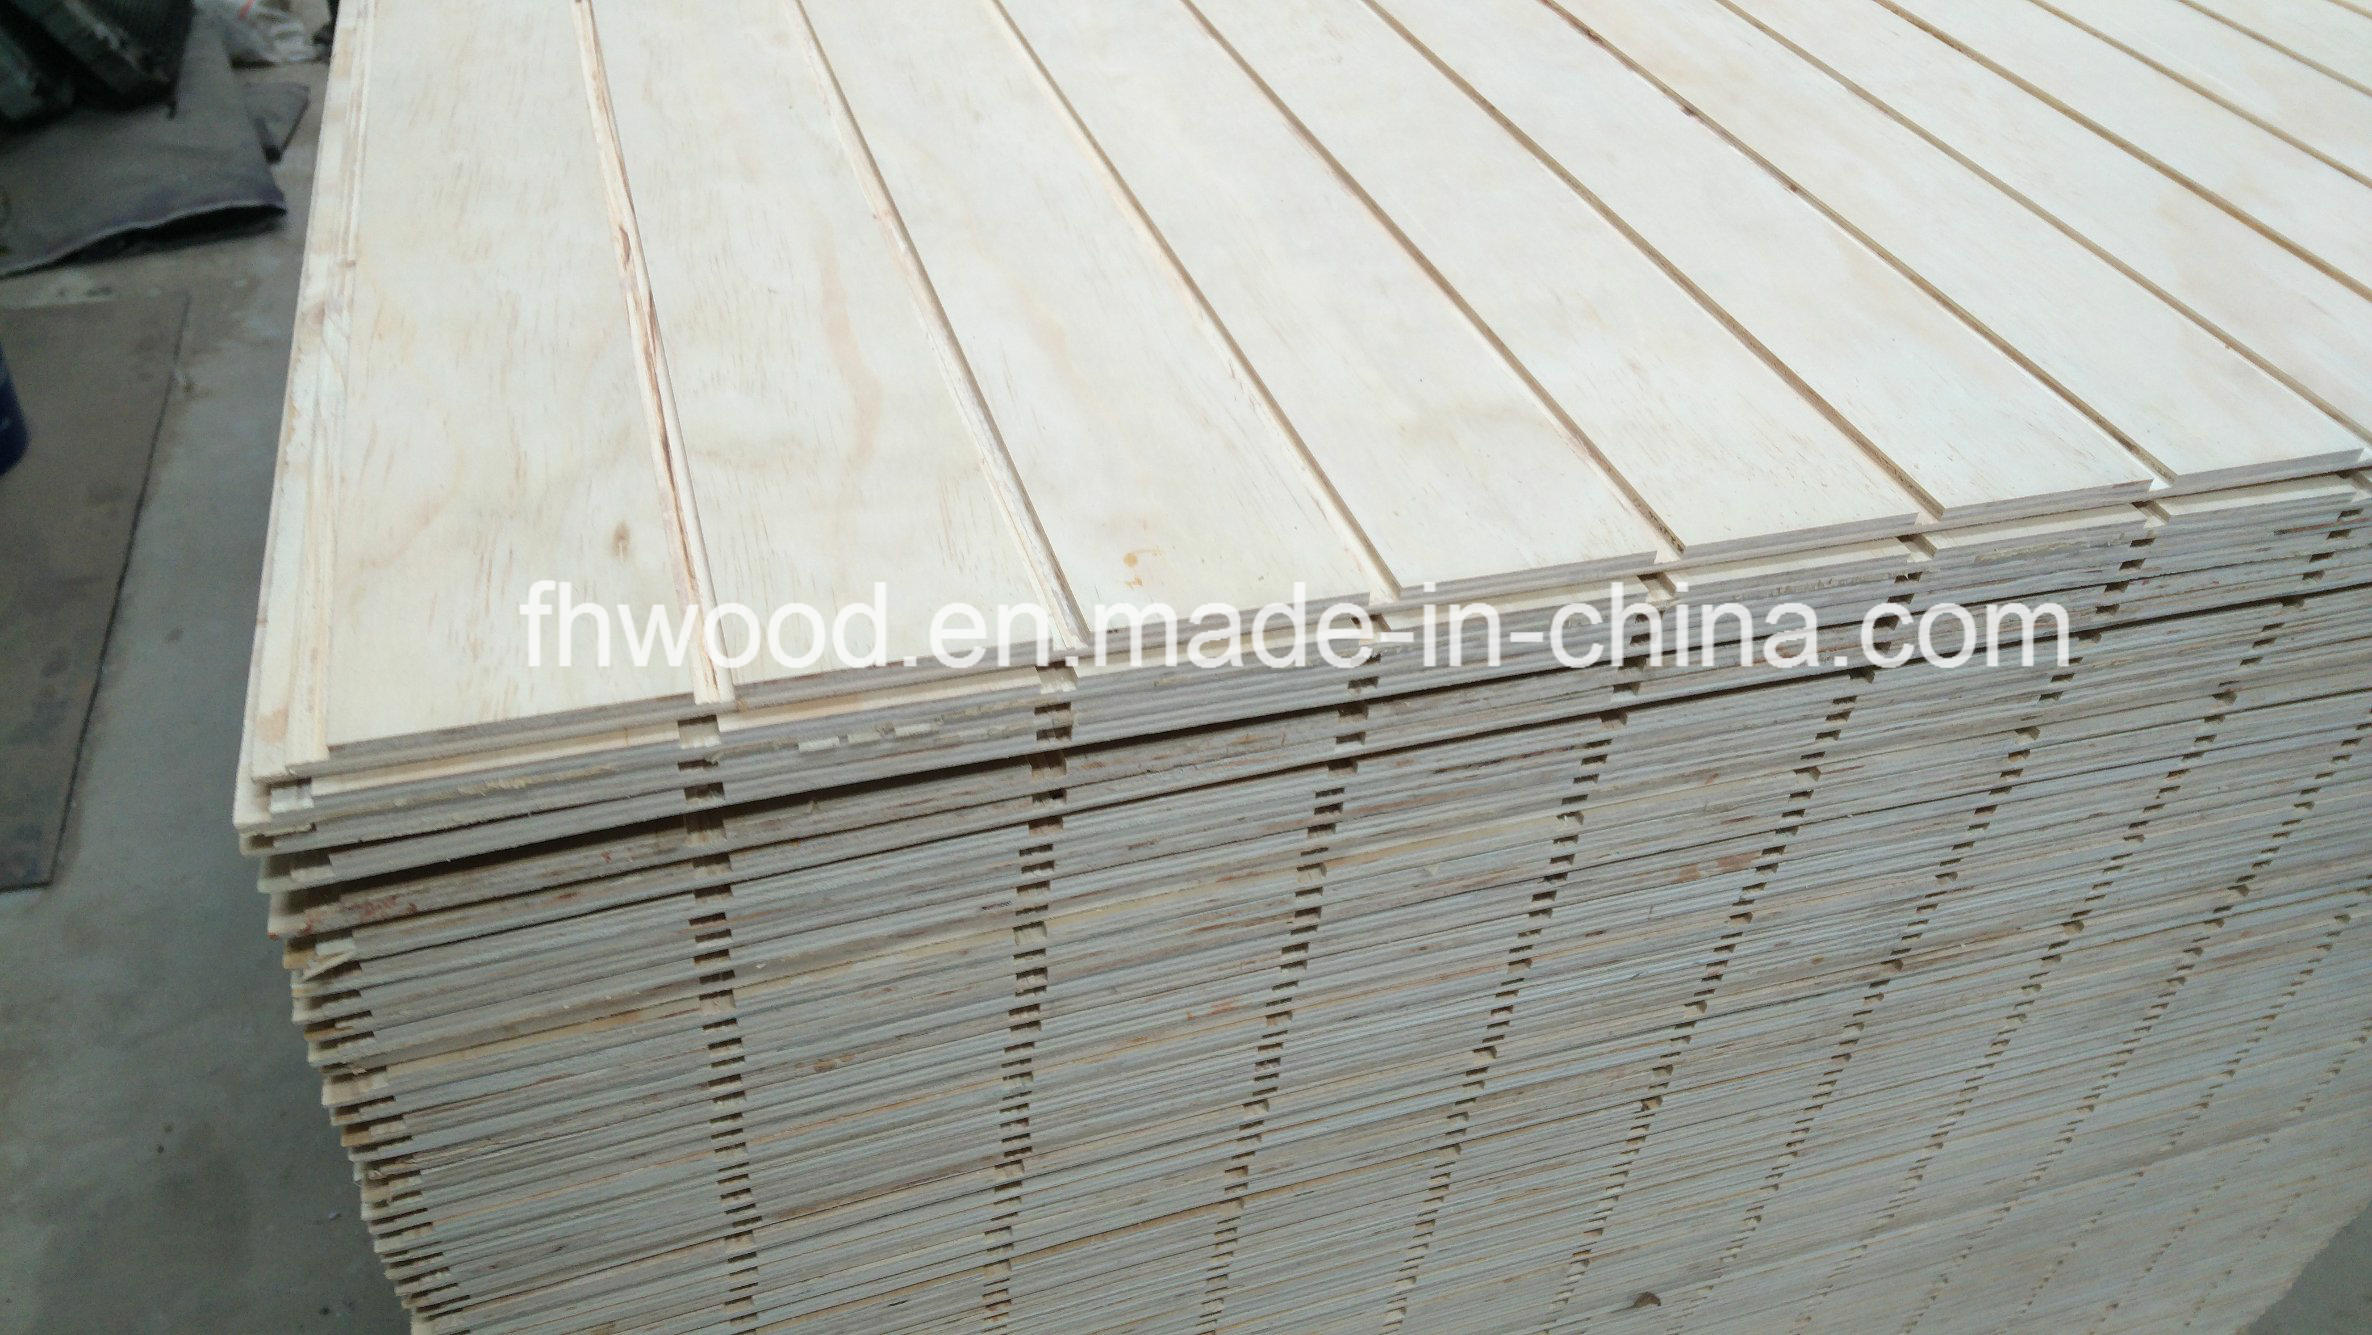 Decorative Pine Plywood with Grooves